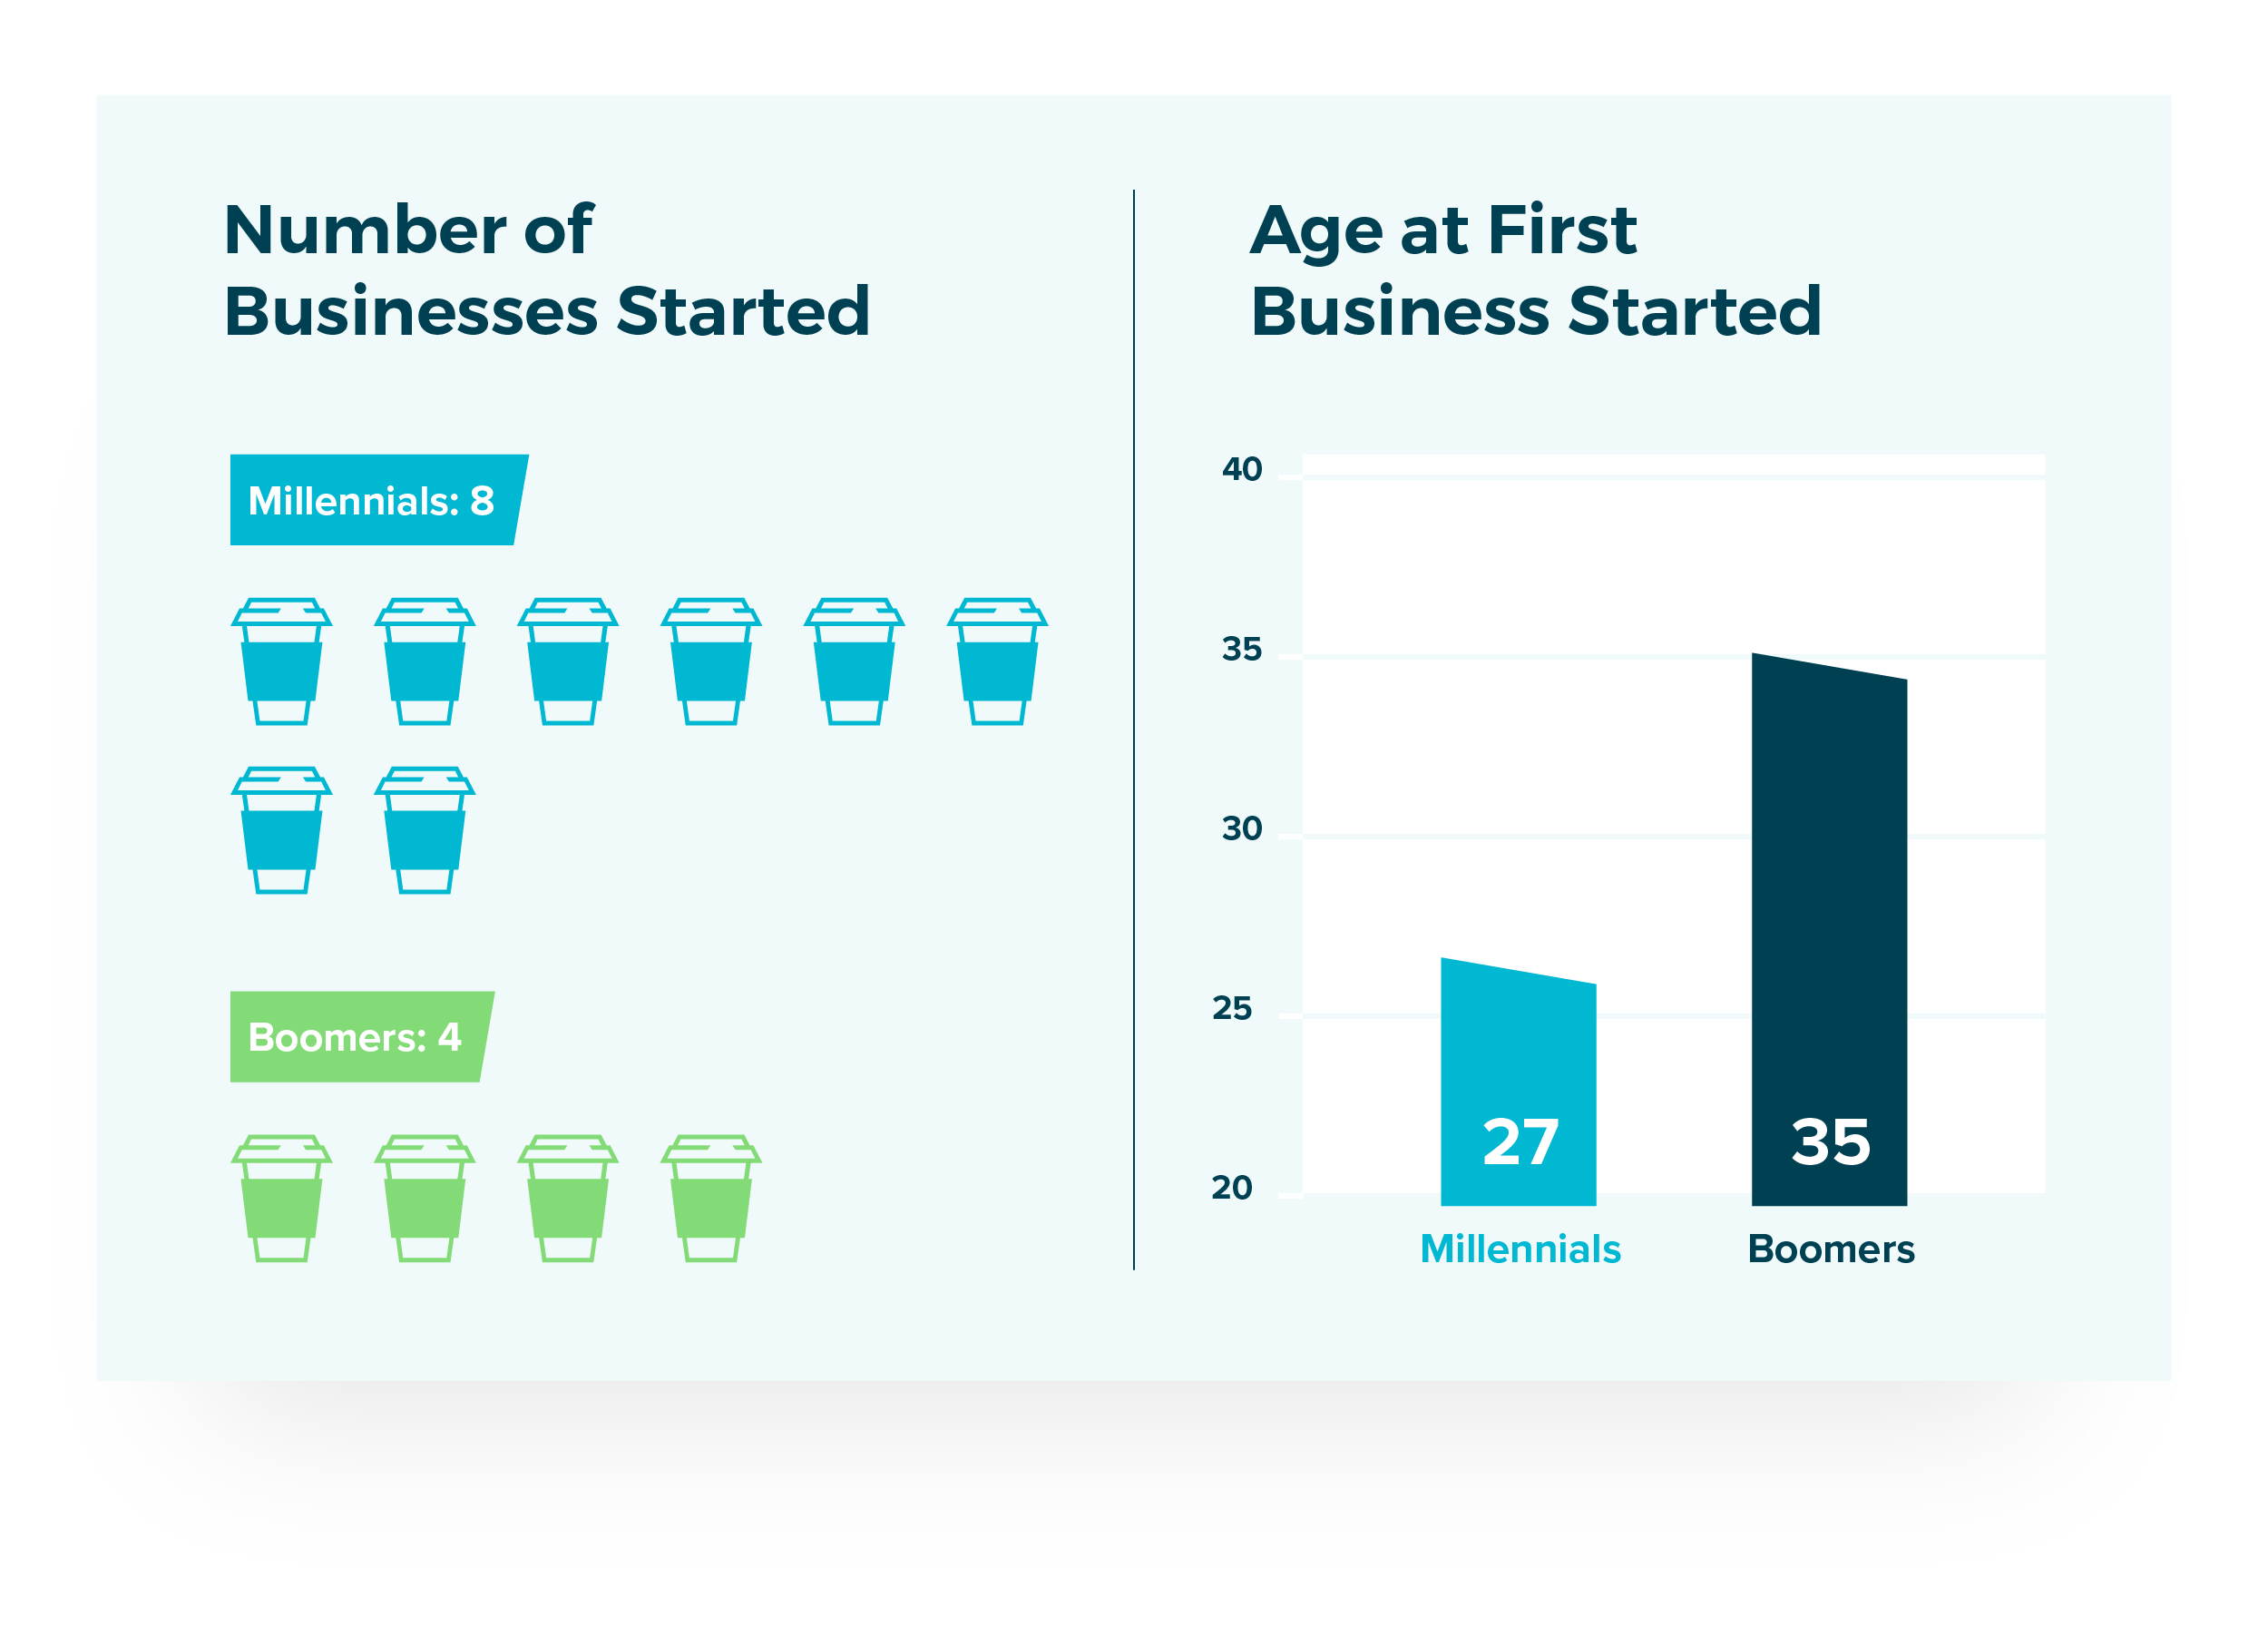 Number of Businesses Started: Millennials 8, Boomers 4. Age at First Bustiness Started: Millennials 27, Boomers 35